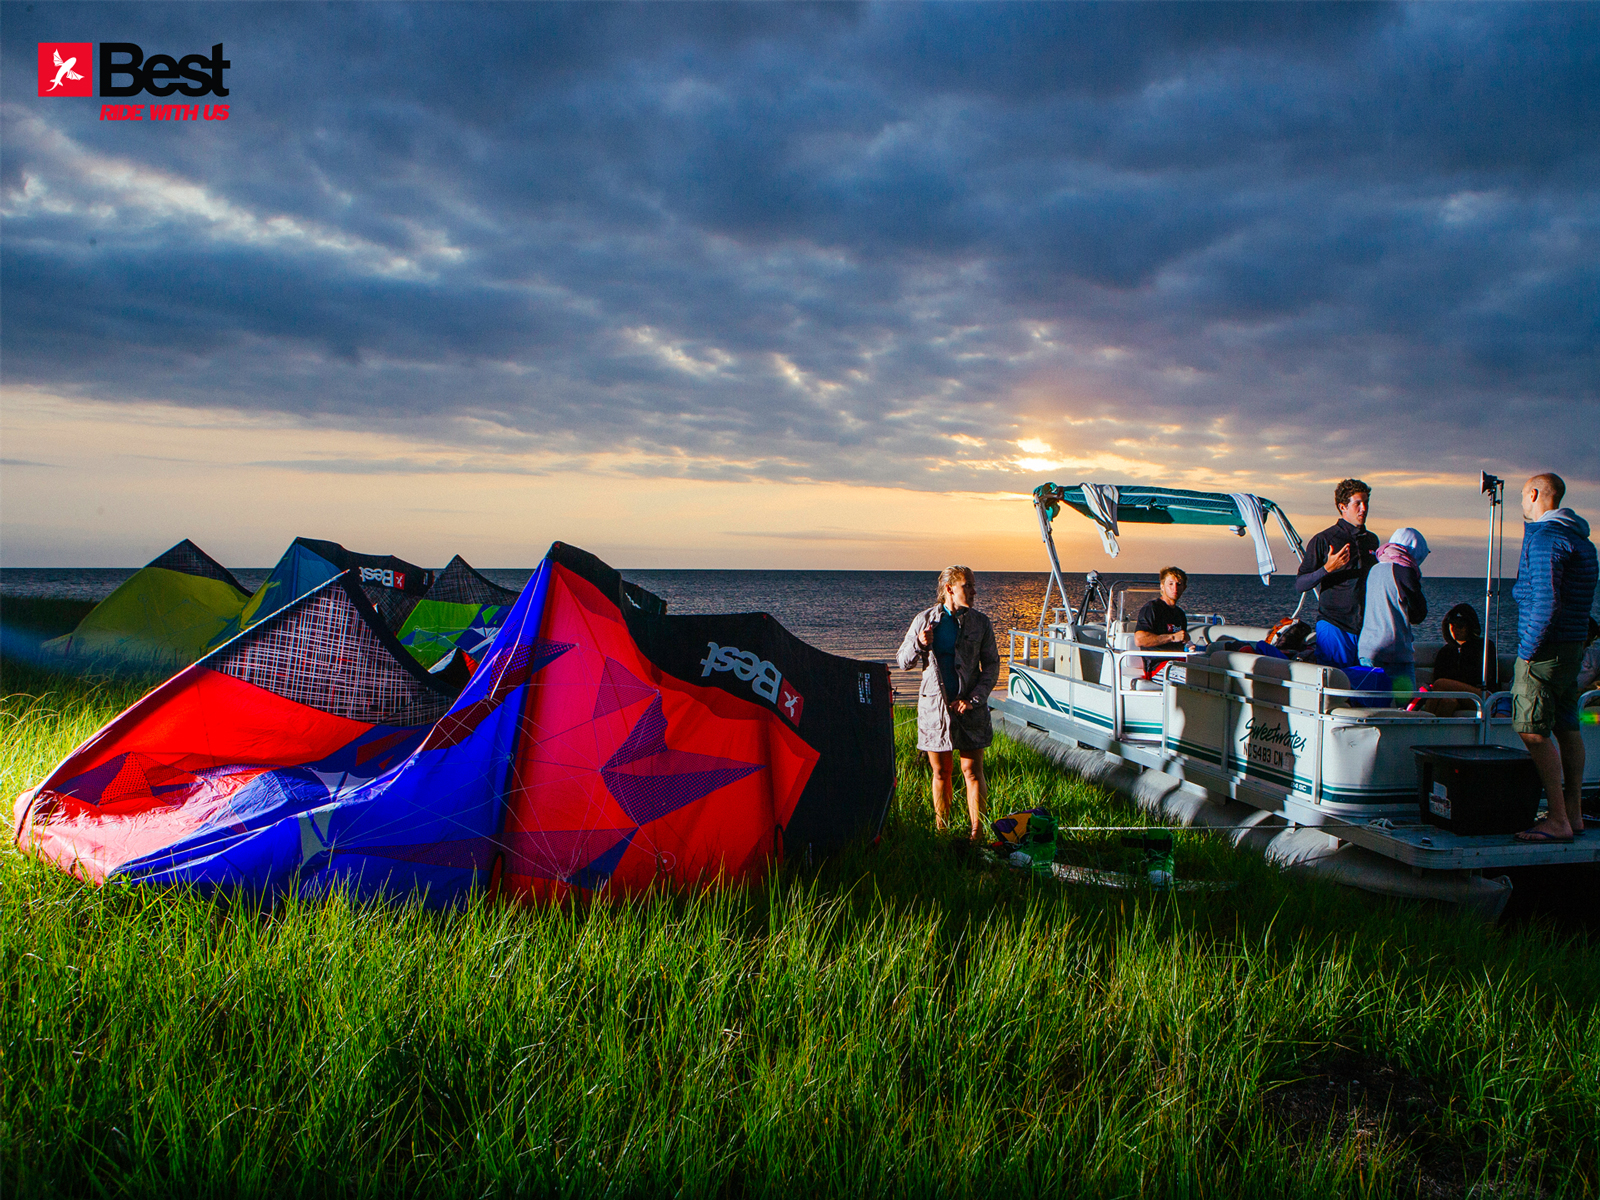 kitesurf wallpaper image - The Best kiteboarding crew chilling out at Cape Hatteras after a day on the water - in resolution: Standard 4:3 1600 X 1200